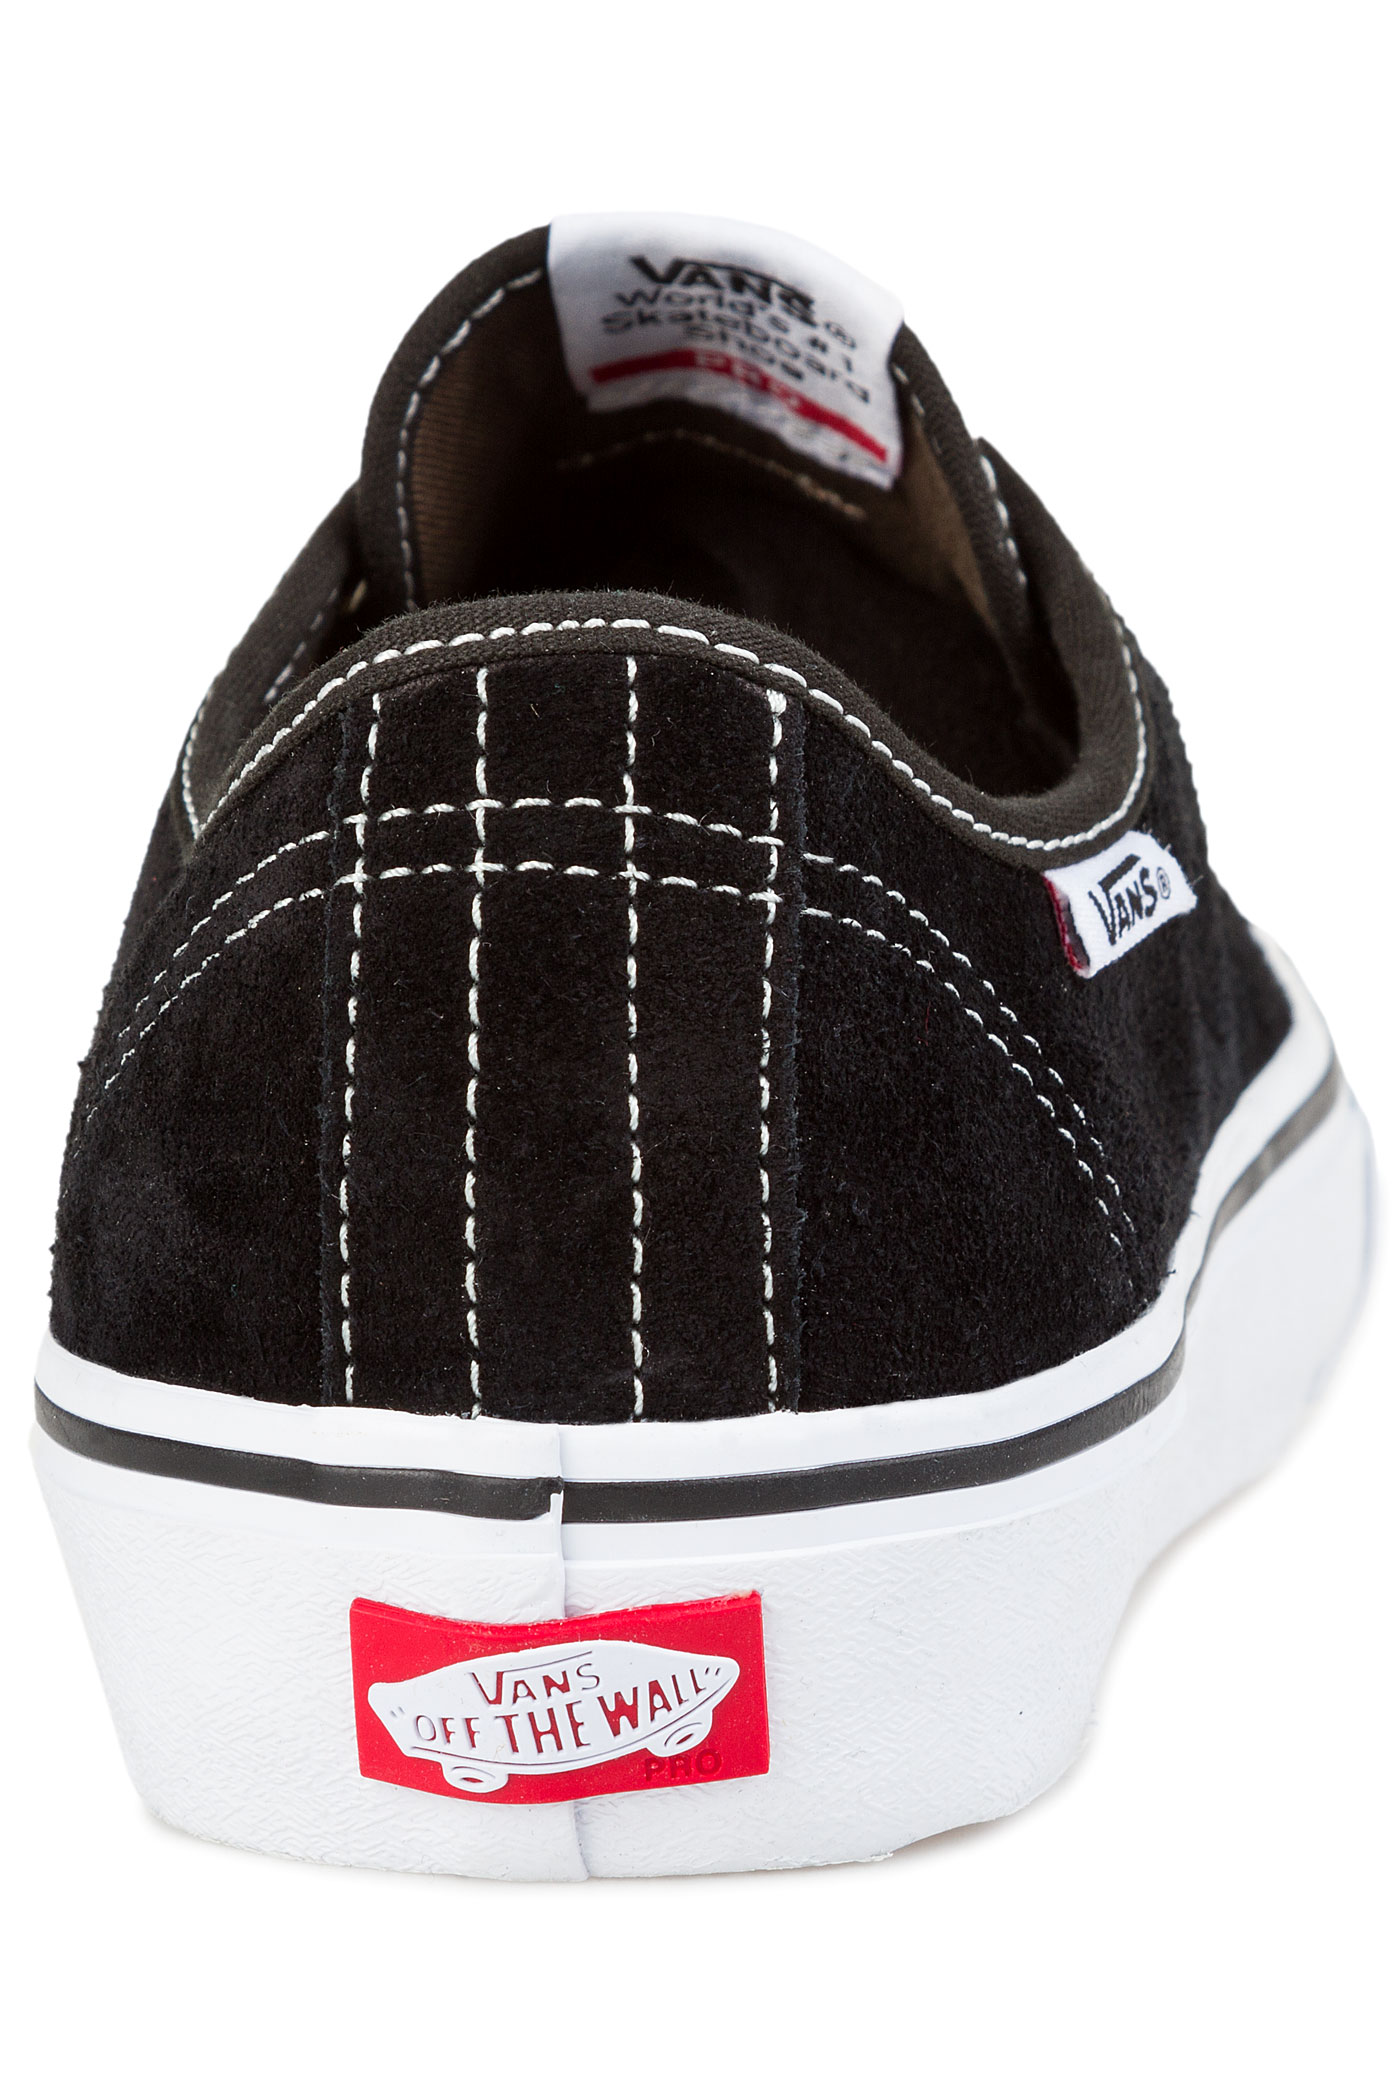 6e7ced84af3e7 Vans Winston Hi Black Sneakers India - Best Sneakers Collection 2017